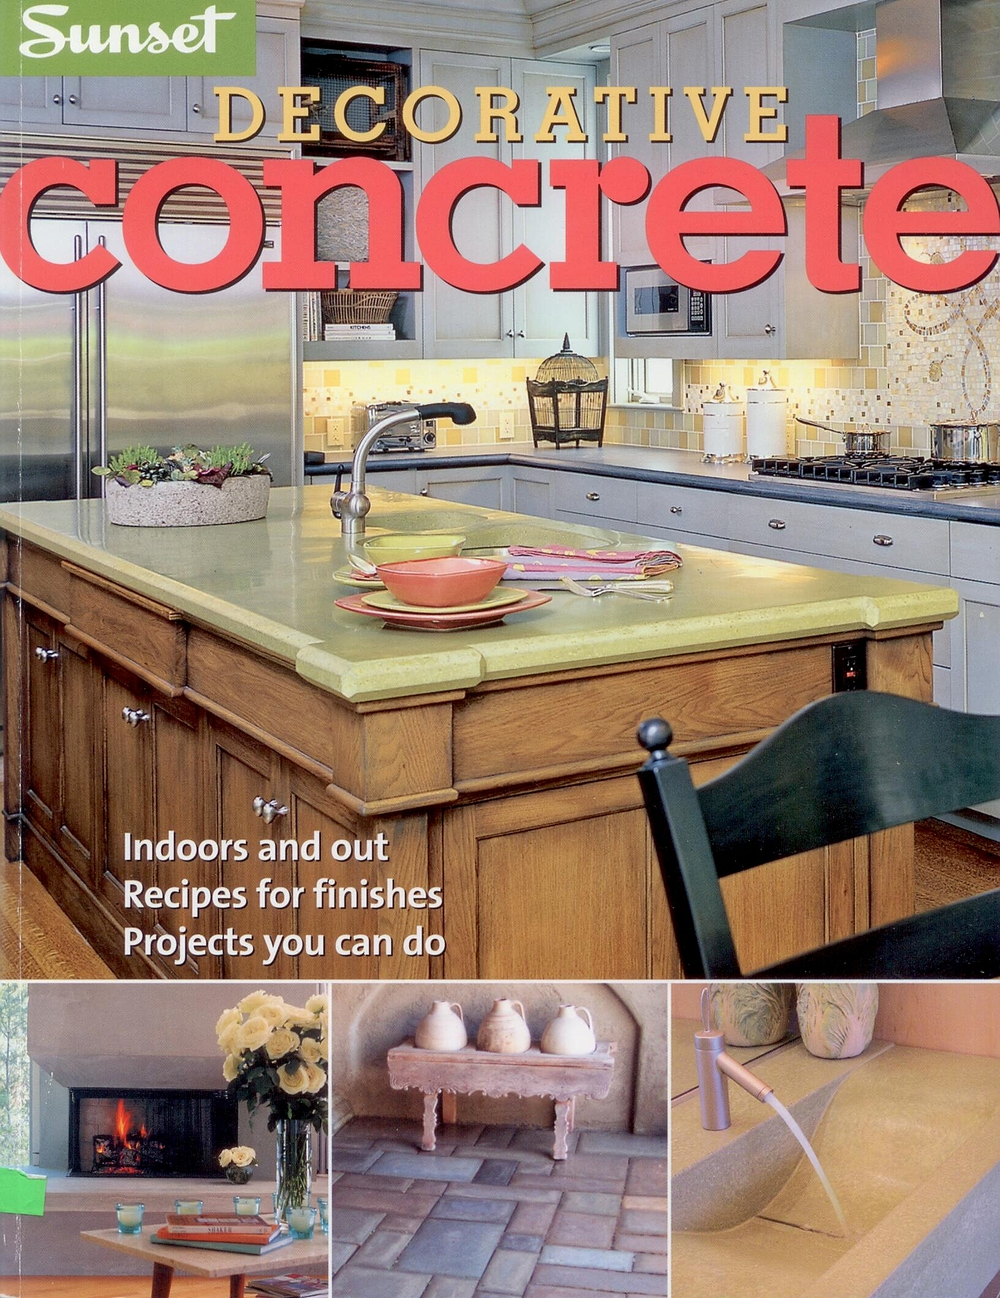 Sunset - Decorative Concrete - Cover.jpg